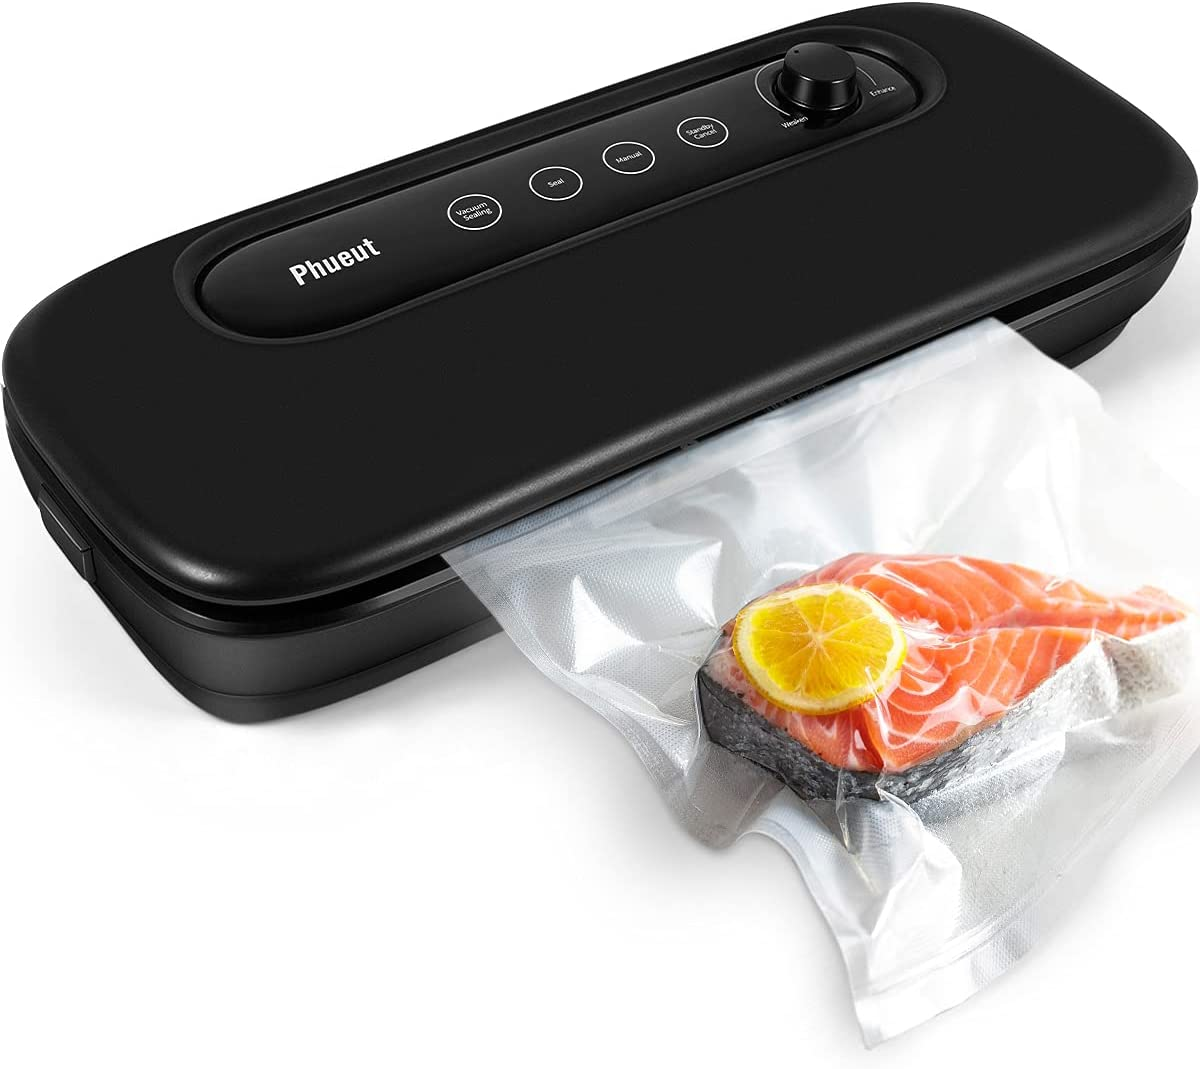 Vacuum Sealer Machine, Automatic Food Saver Machine with Powerful Air Sealing System (-60Kpa), Dry & Mist Food Saving Machine with Adjustable Suction & LED Indicator Lights (20 bags)